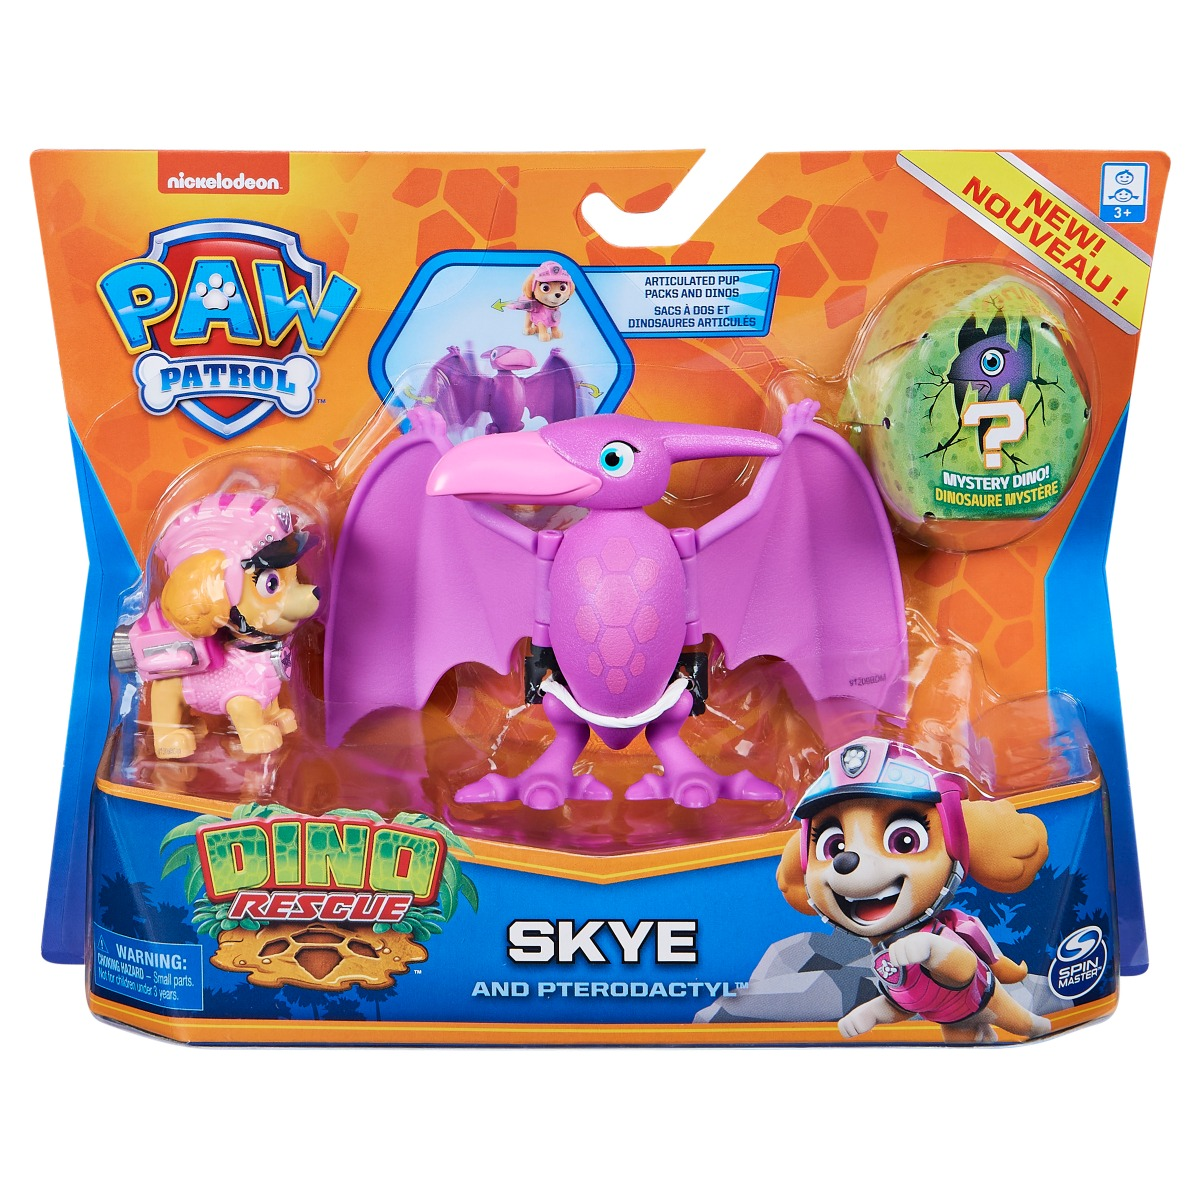 Set 2 figurine Paw Patrol Dino Rescue, Skye and Pterodactyl, 20126401